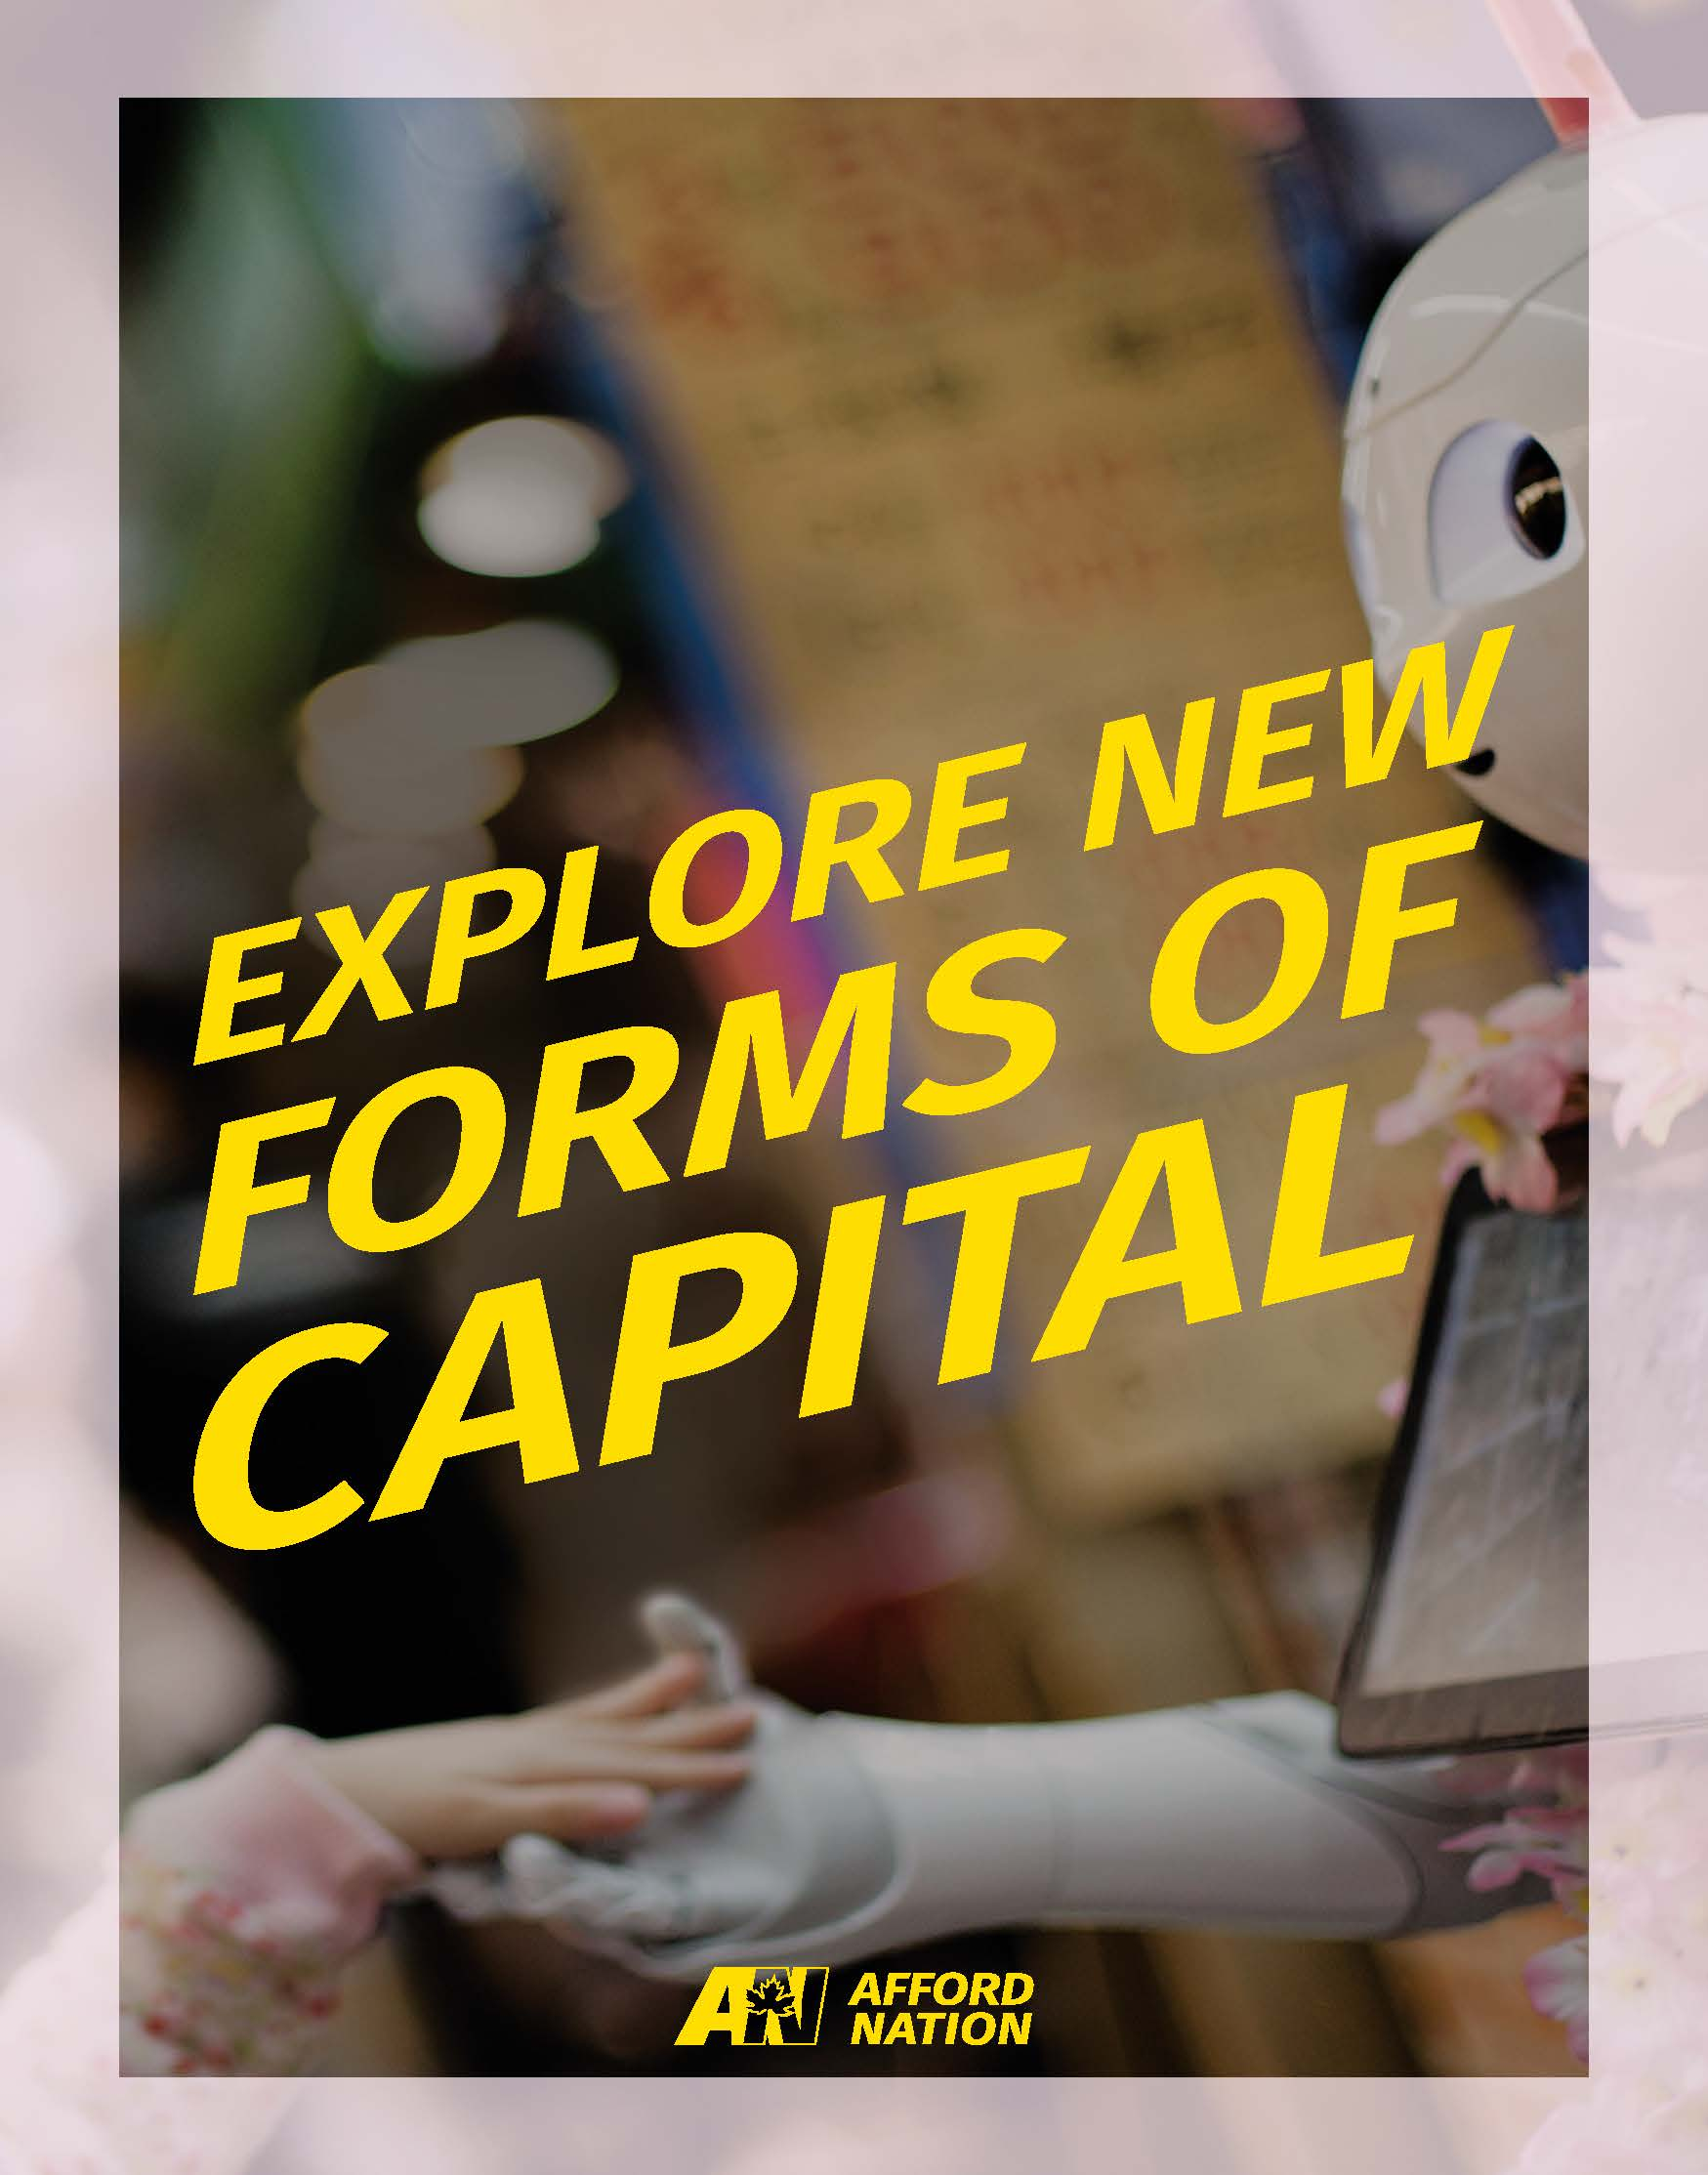 Explore new forms of capital